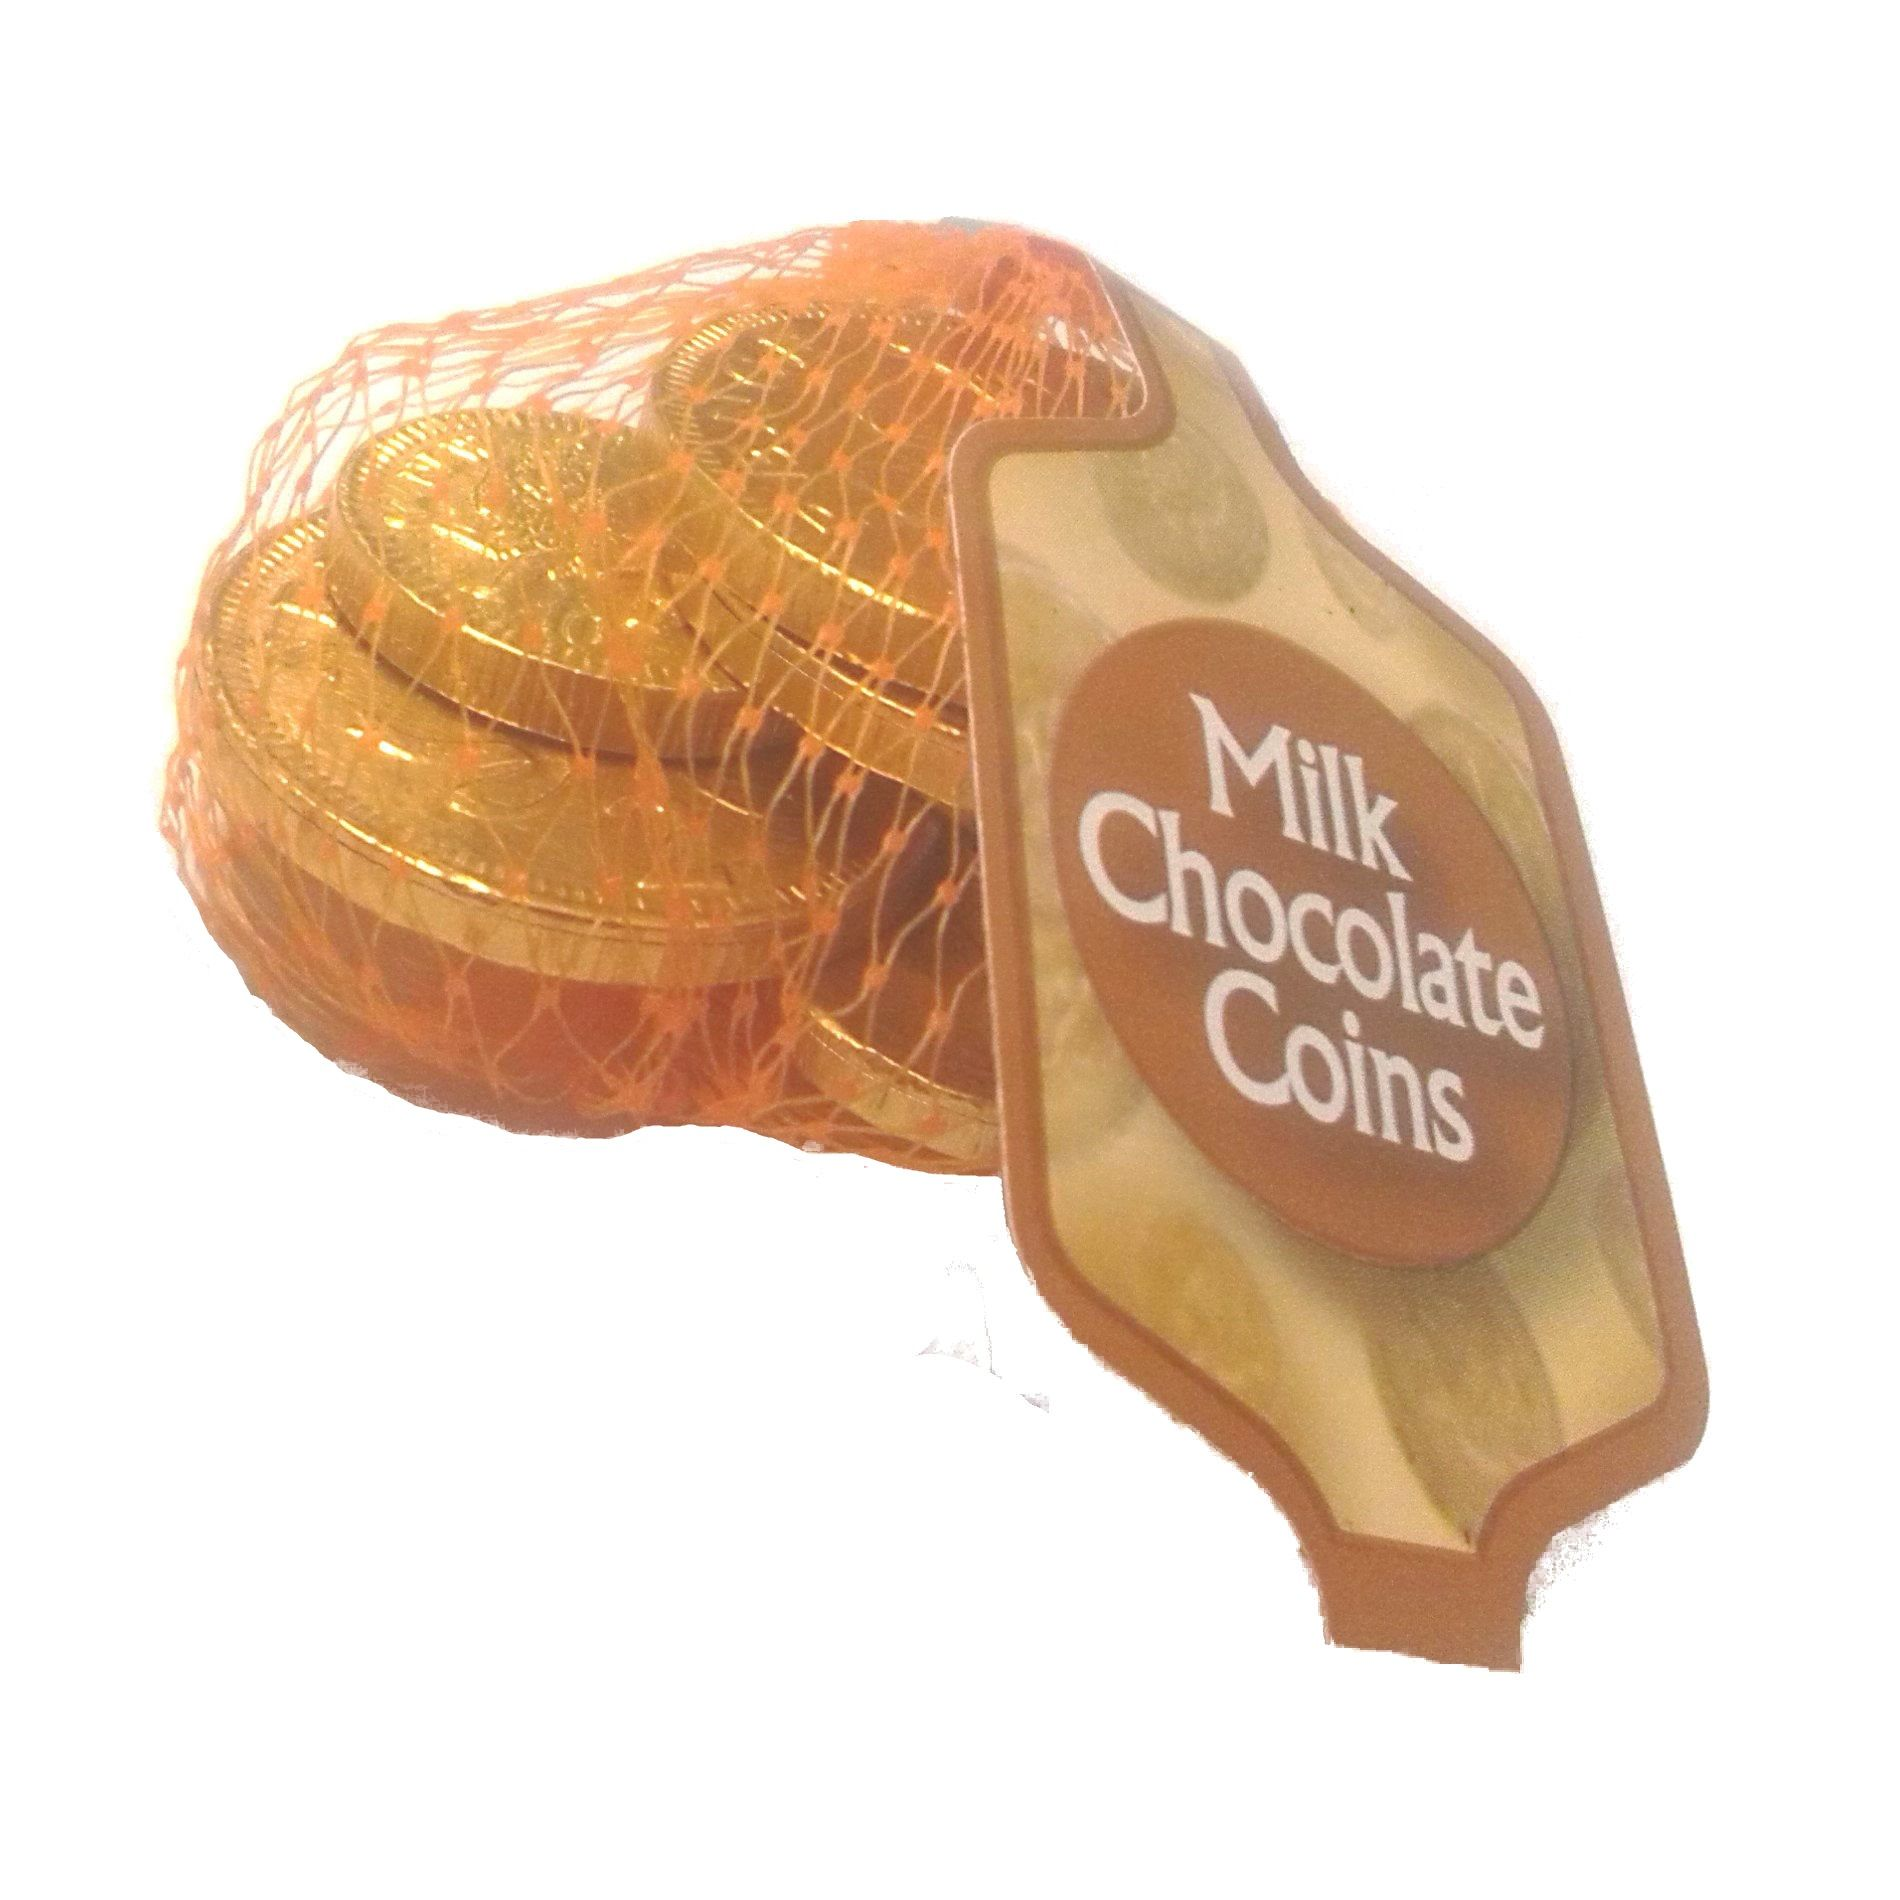 bag chocolate coins